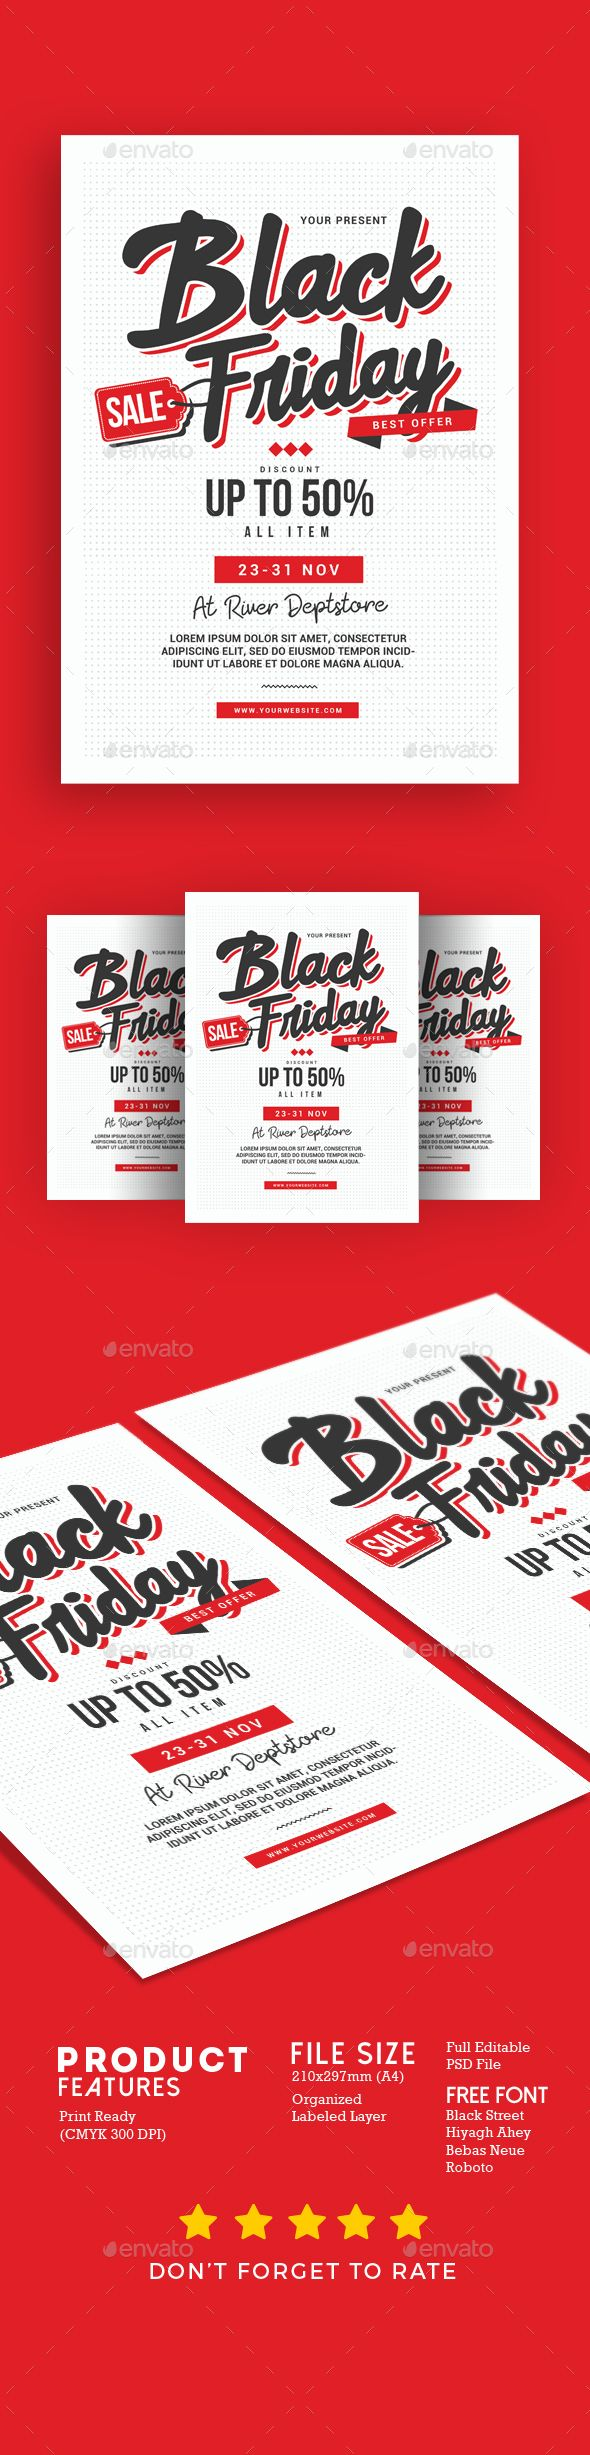 black friday sale flyer template psd download flyer templates